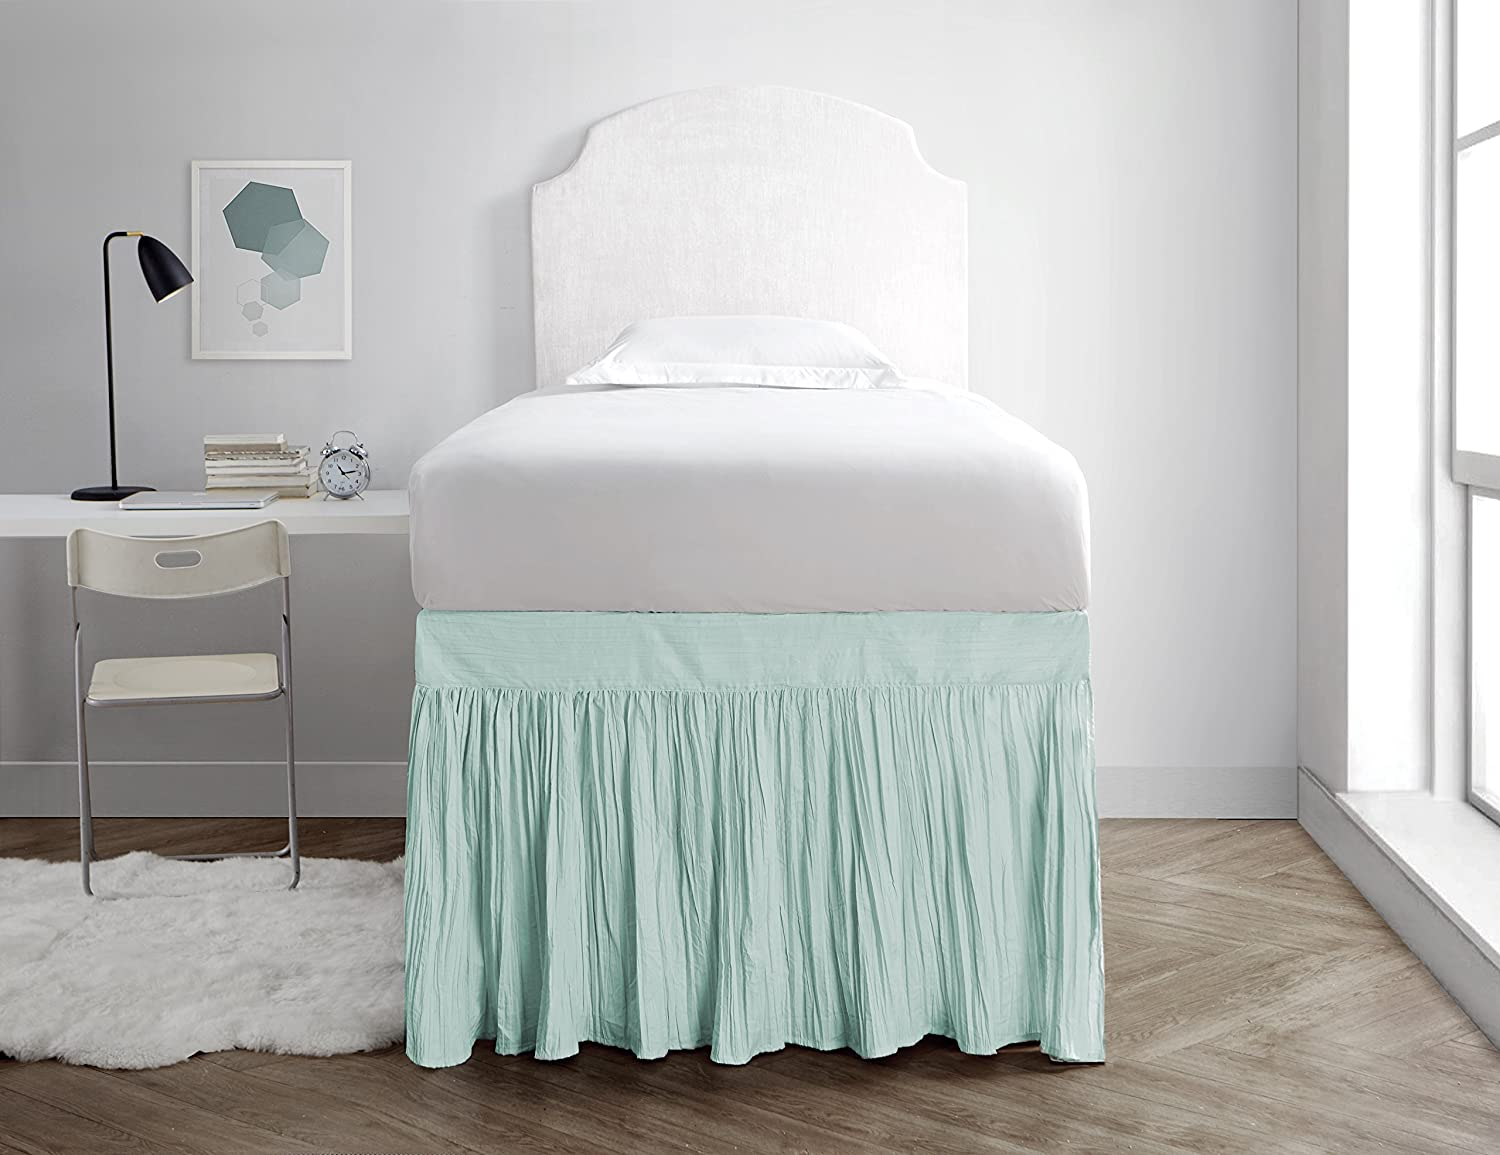 Awe Inspiring Amazon Com Crinkle Dorm Sized Bed Skirt Panel With Ties 1 Download Free Architecture Designs Scobabritishbridgeorg